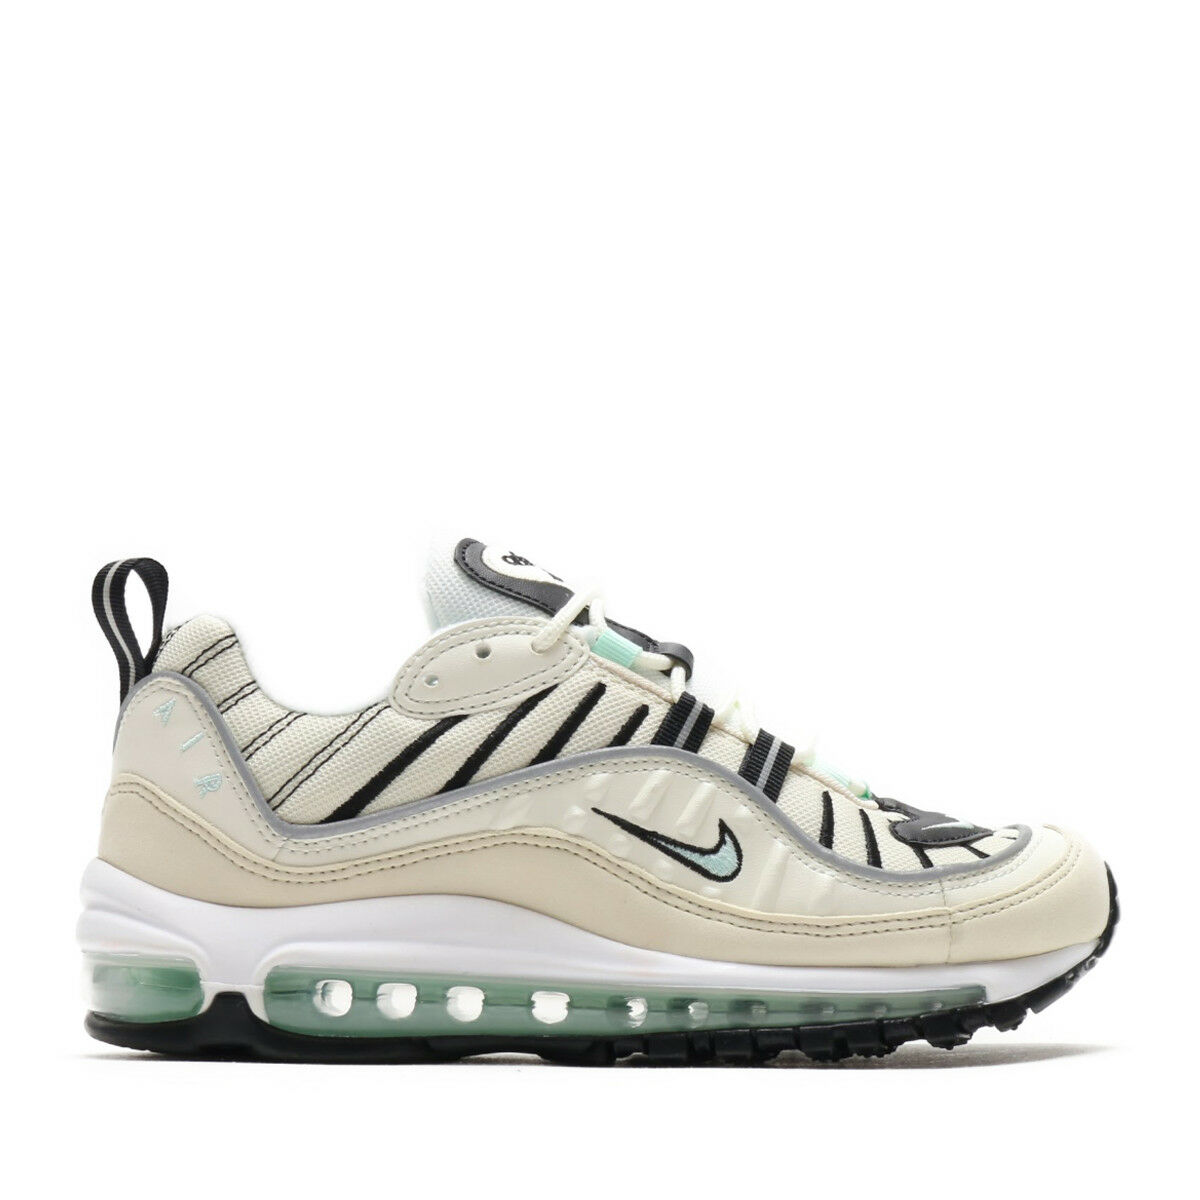 newest f6306 77ca1 ... authentic nike air max max air 97 iglu ab99fd e6748 91f53